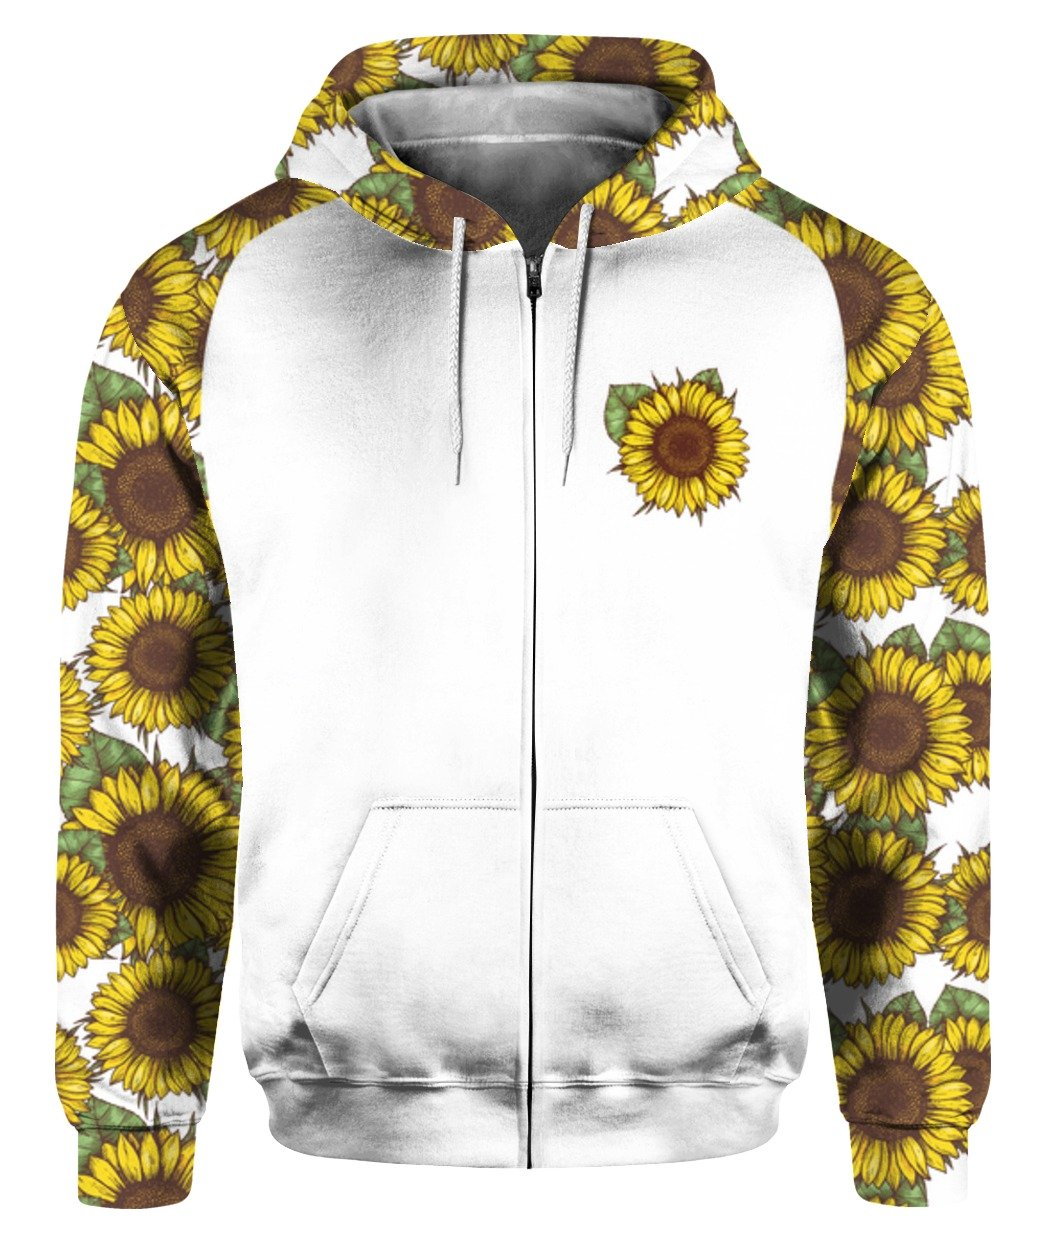 I'm blunt because god rolled me that way sunflower all over print zip hoodie